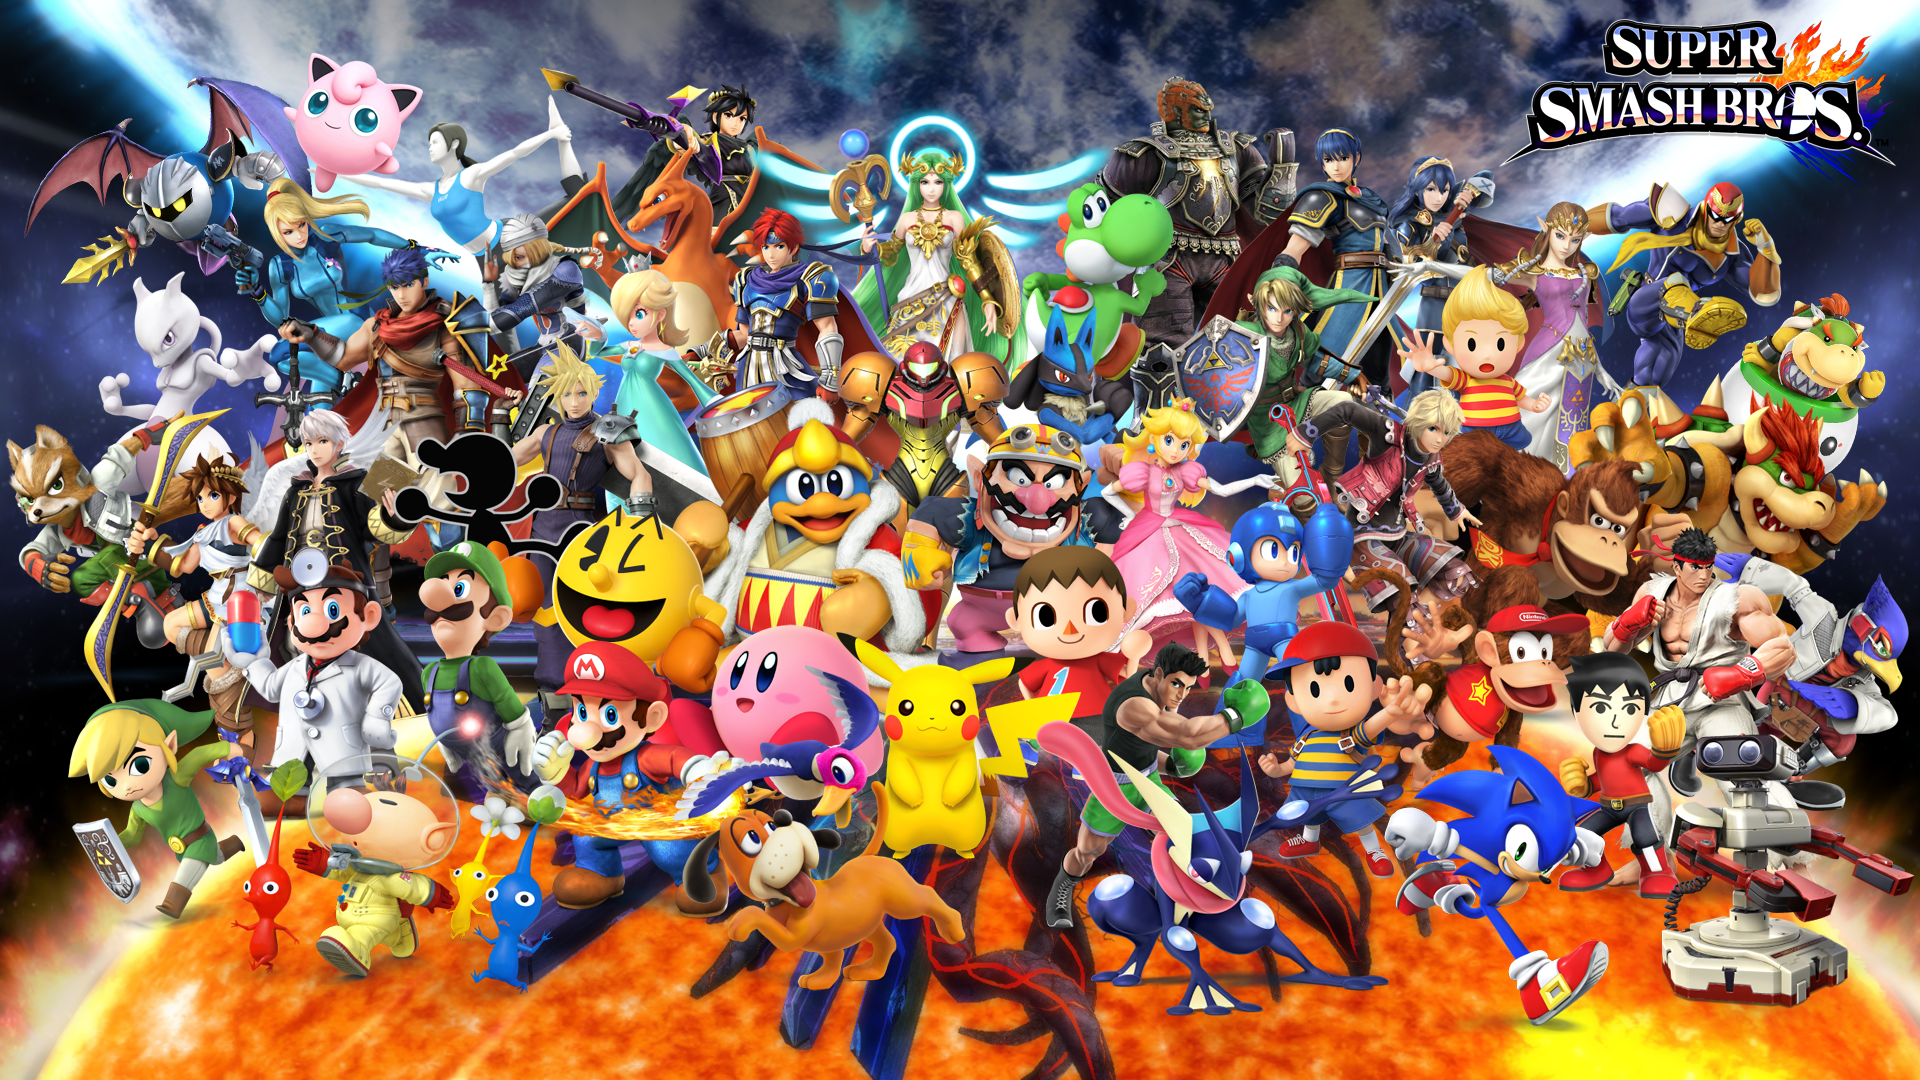 TJI83: Smash Wallpaper 1920x1080 Download